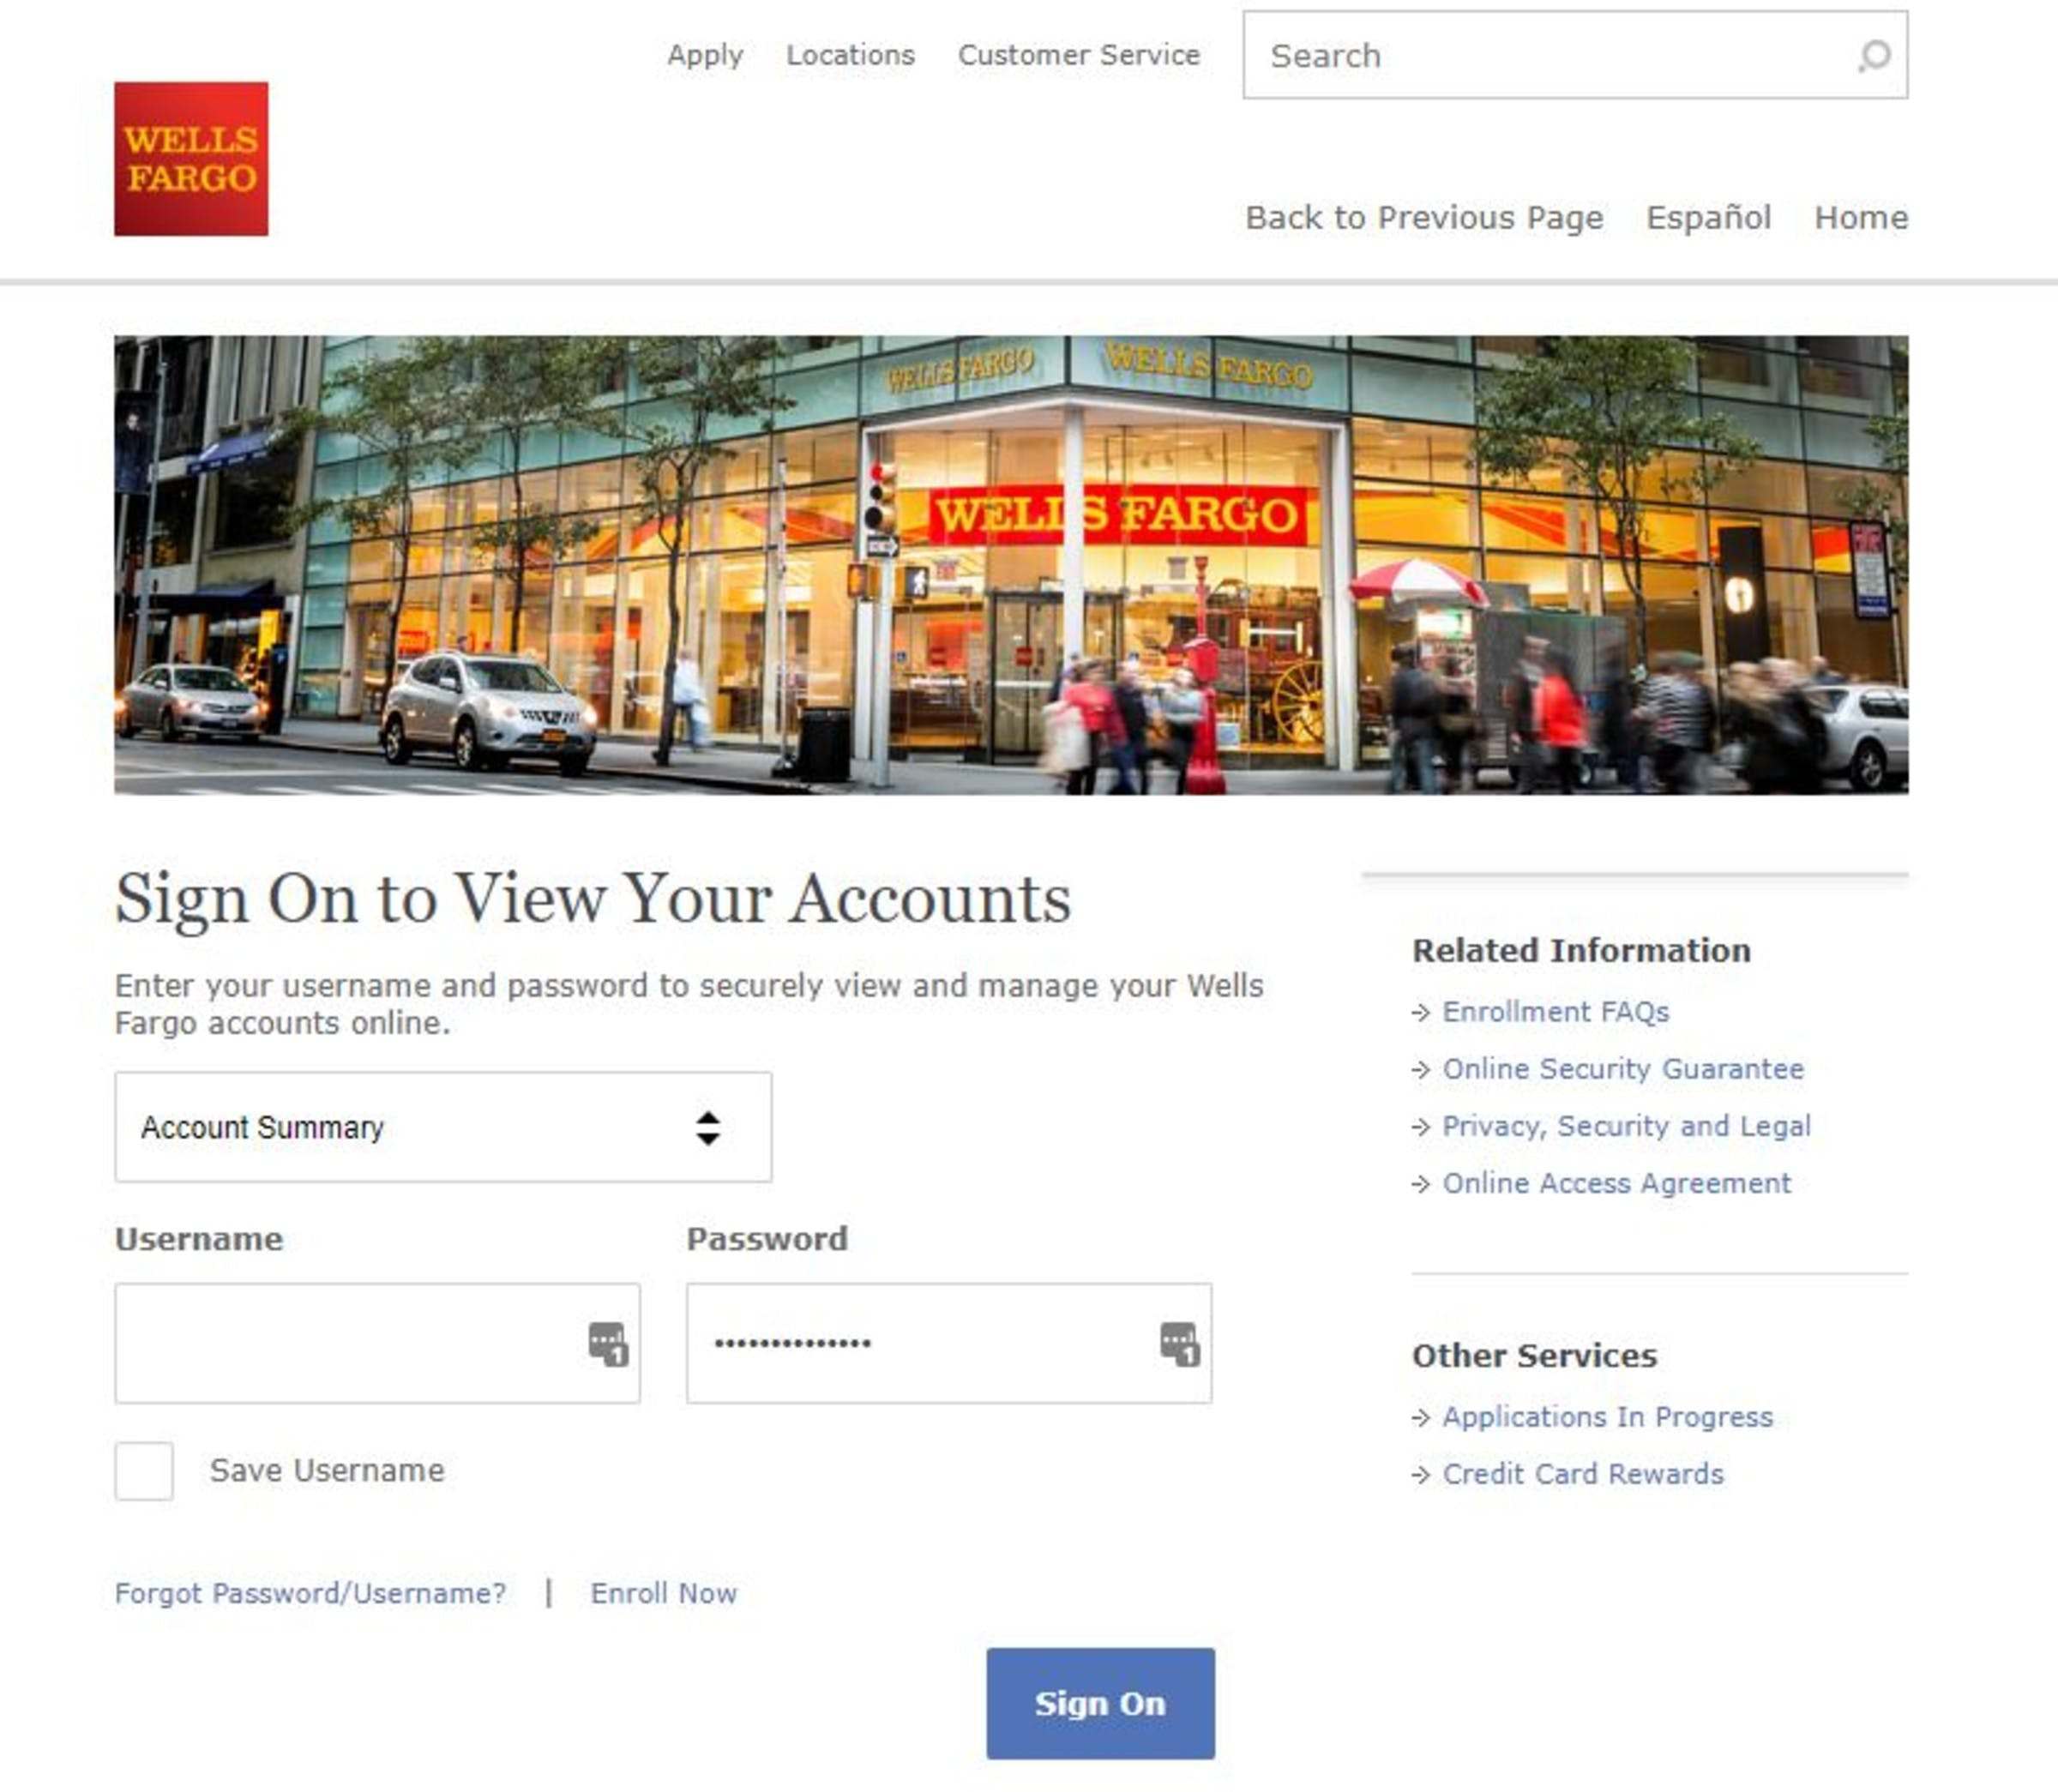 Wells Fargo Foreign Currency Exchange, International Wire Transfer